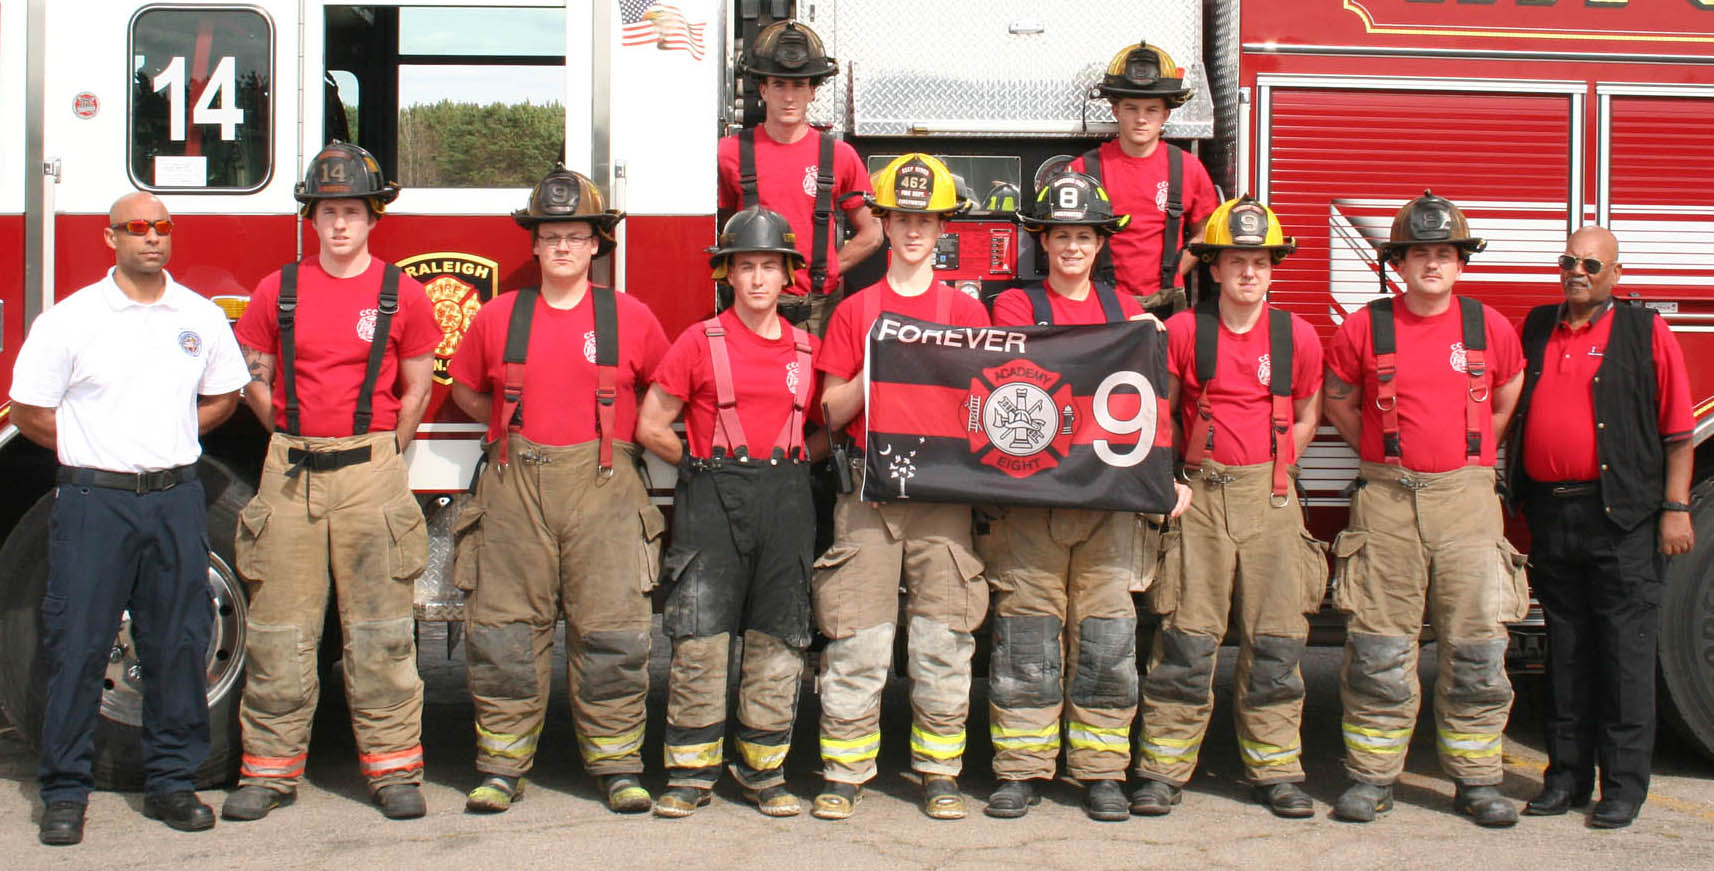 Click to enlarge,  Members of the Central Carolina Community College Fire Academy Spring 2017 are pictured, left to right: in front, Lt. Tim Houston (Fire Academy Coordinator), Joshua Ragan, Justin Gaster, Cam Jaynes, Spencer Fallin, Madison Perry, Dallas Faulk, Daniel Chandler, and Capt. Tramp Dunn (Ret.) (Fire Training Advisor); in back, Austin Gribble and Brent Hilliard.